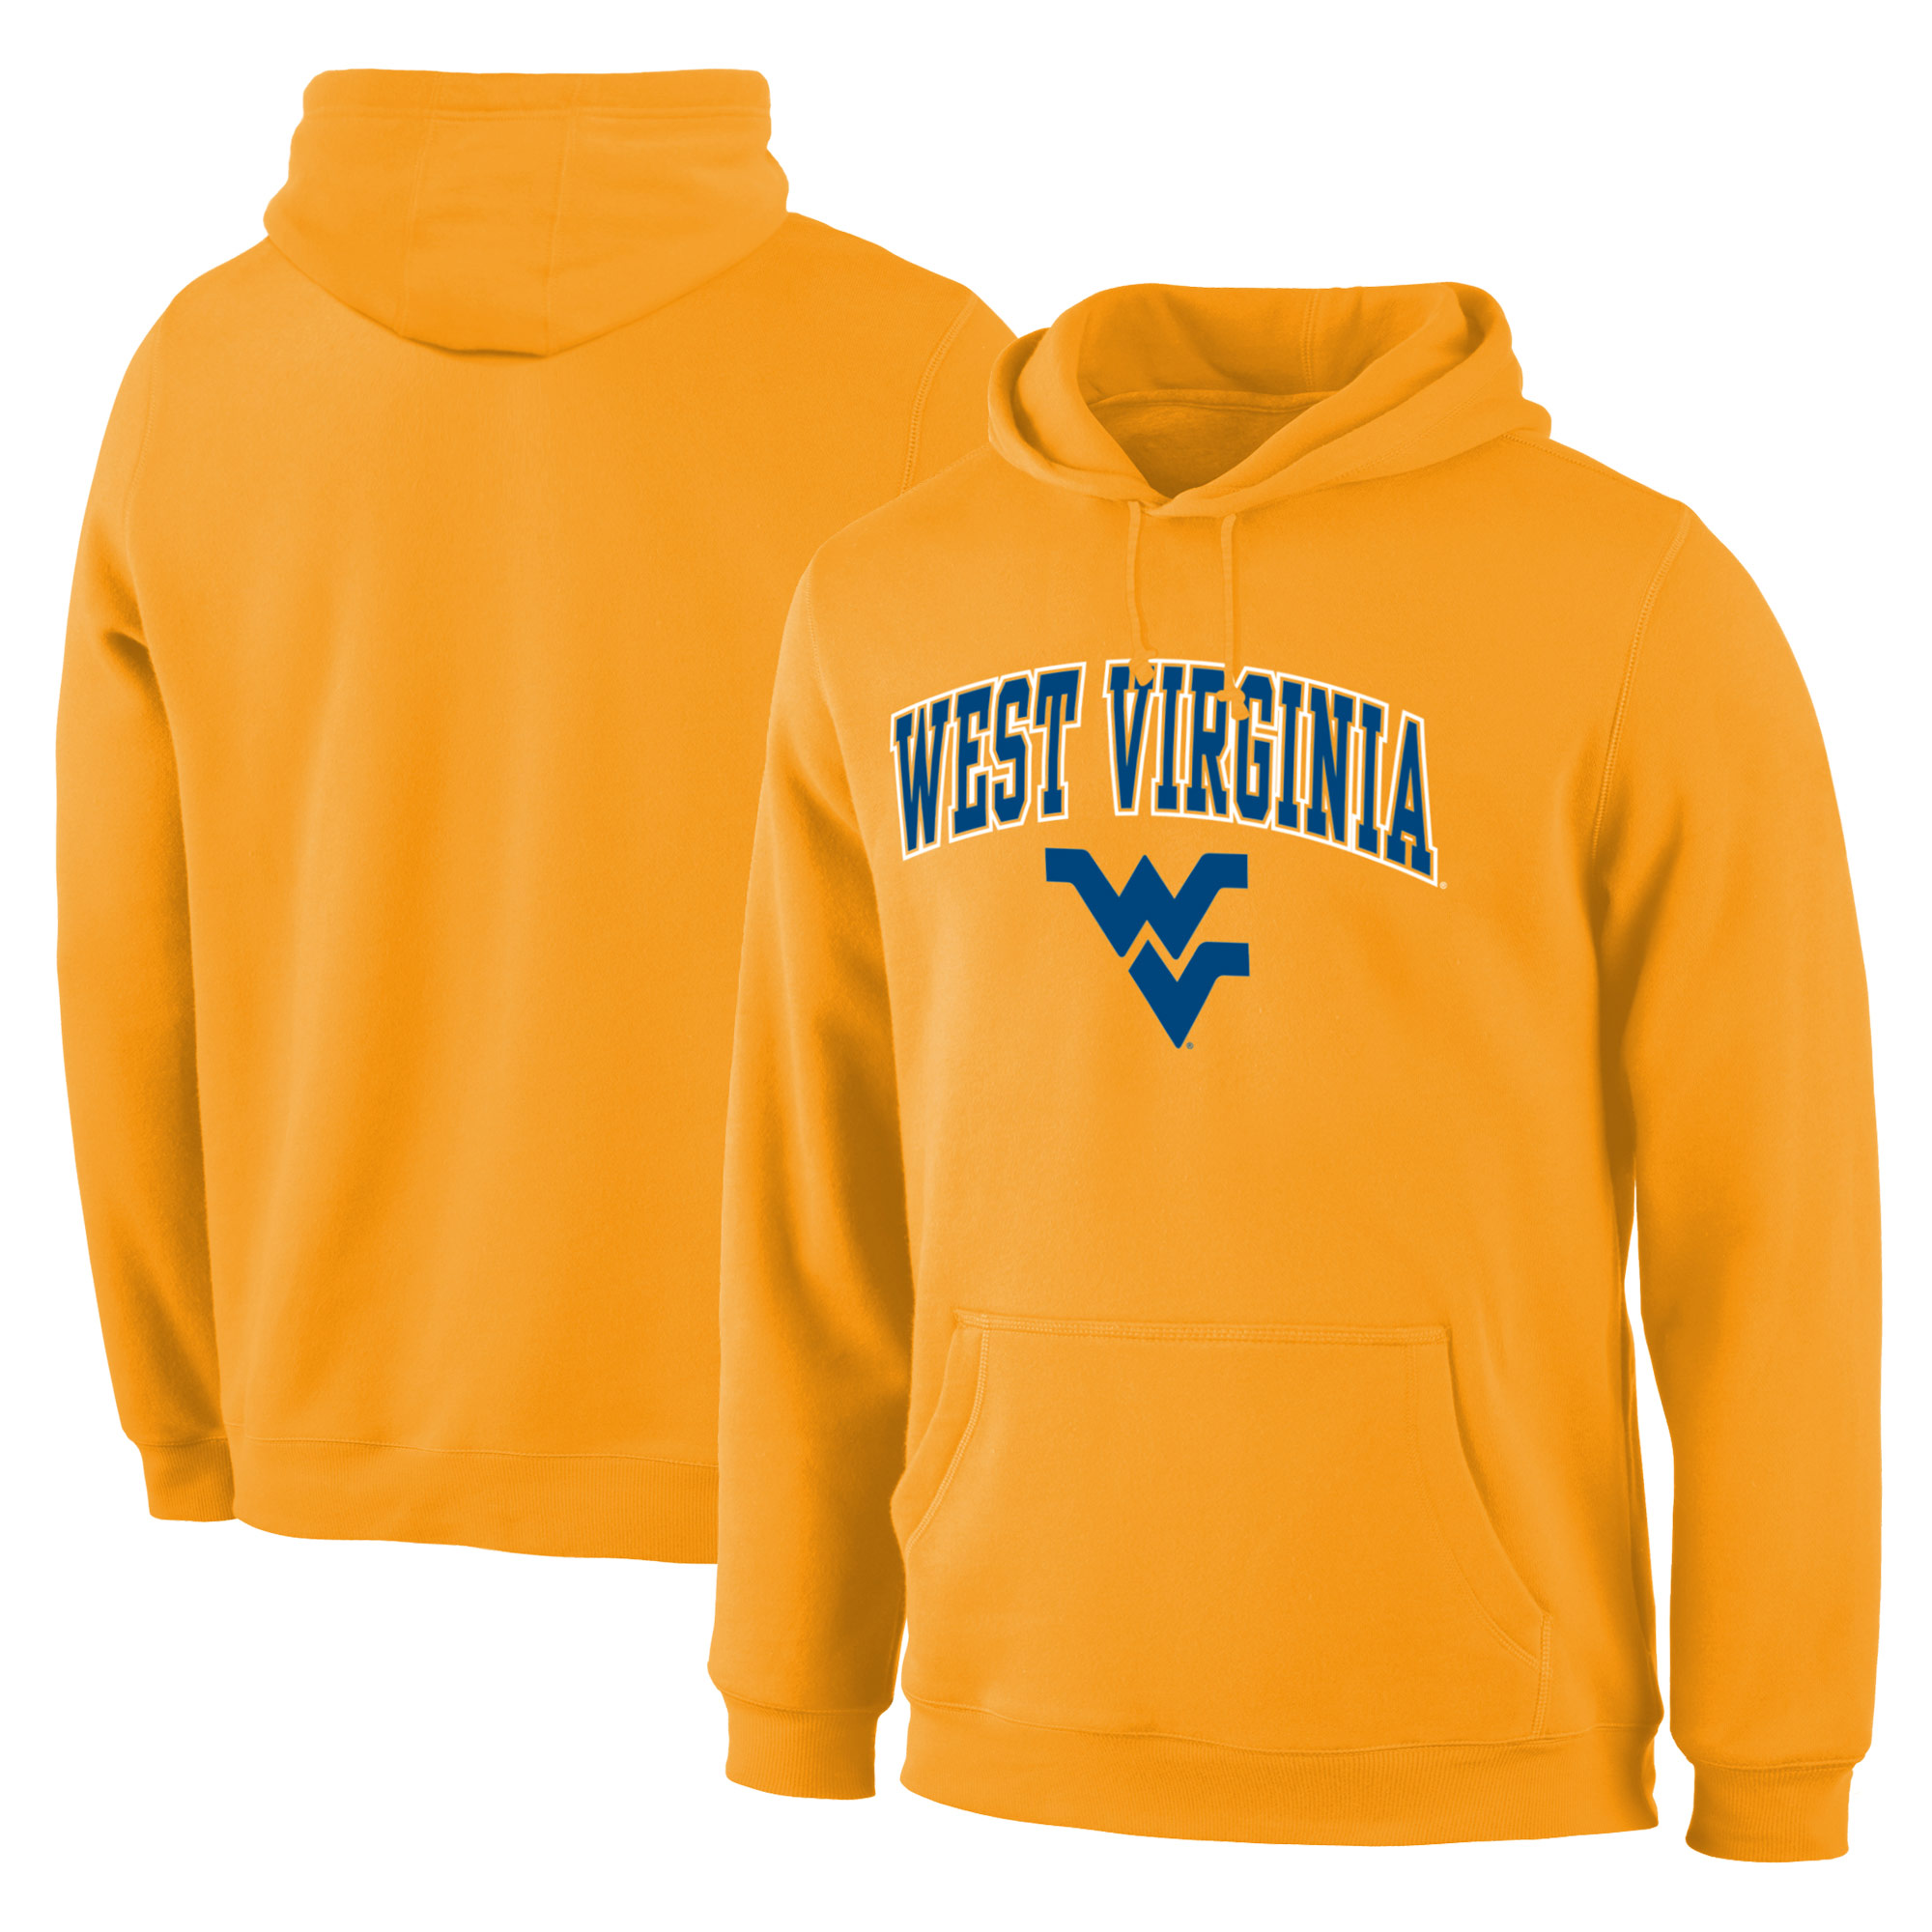 West Virginia Mountaineers Gold Campus Pullover Hoodie